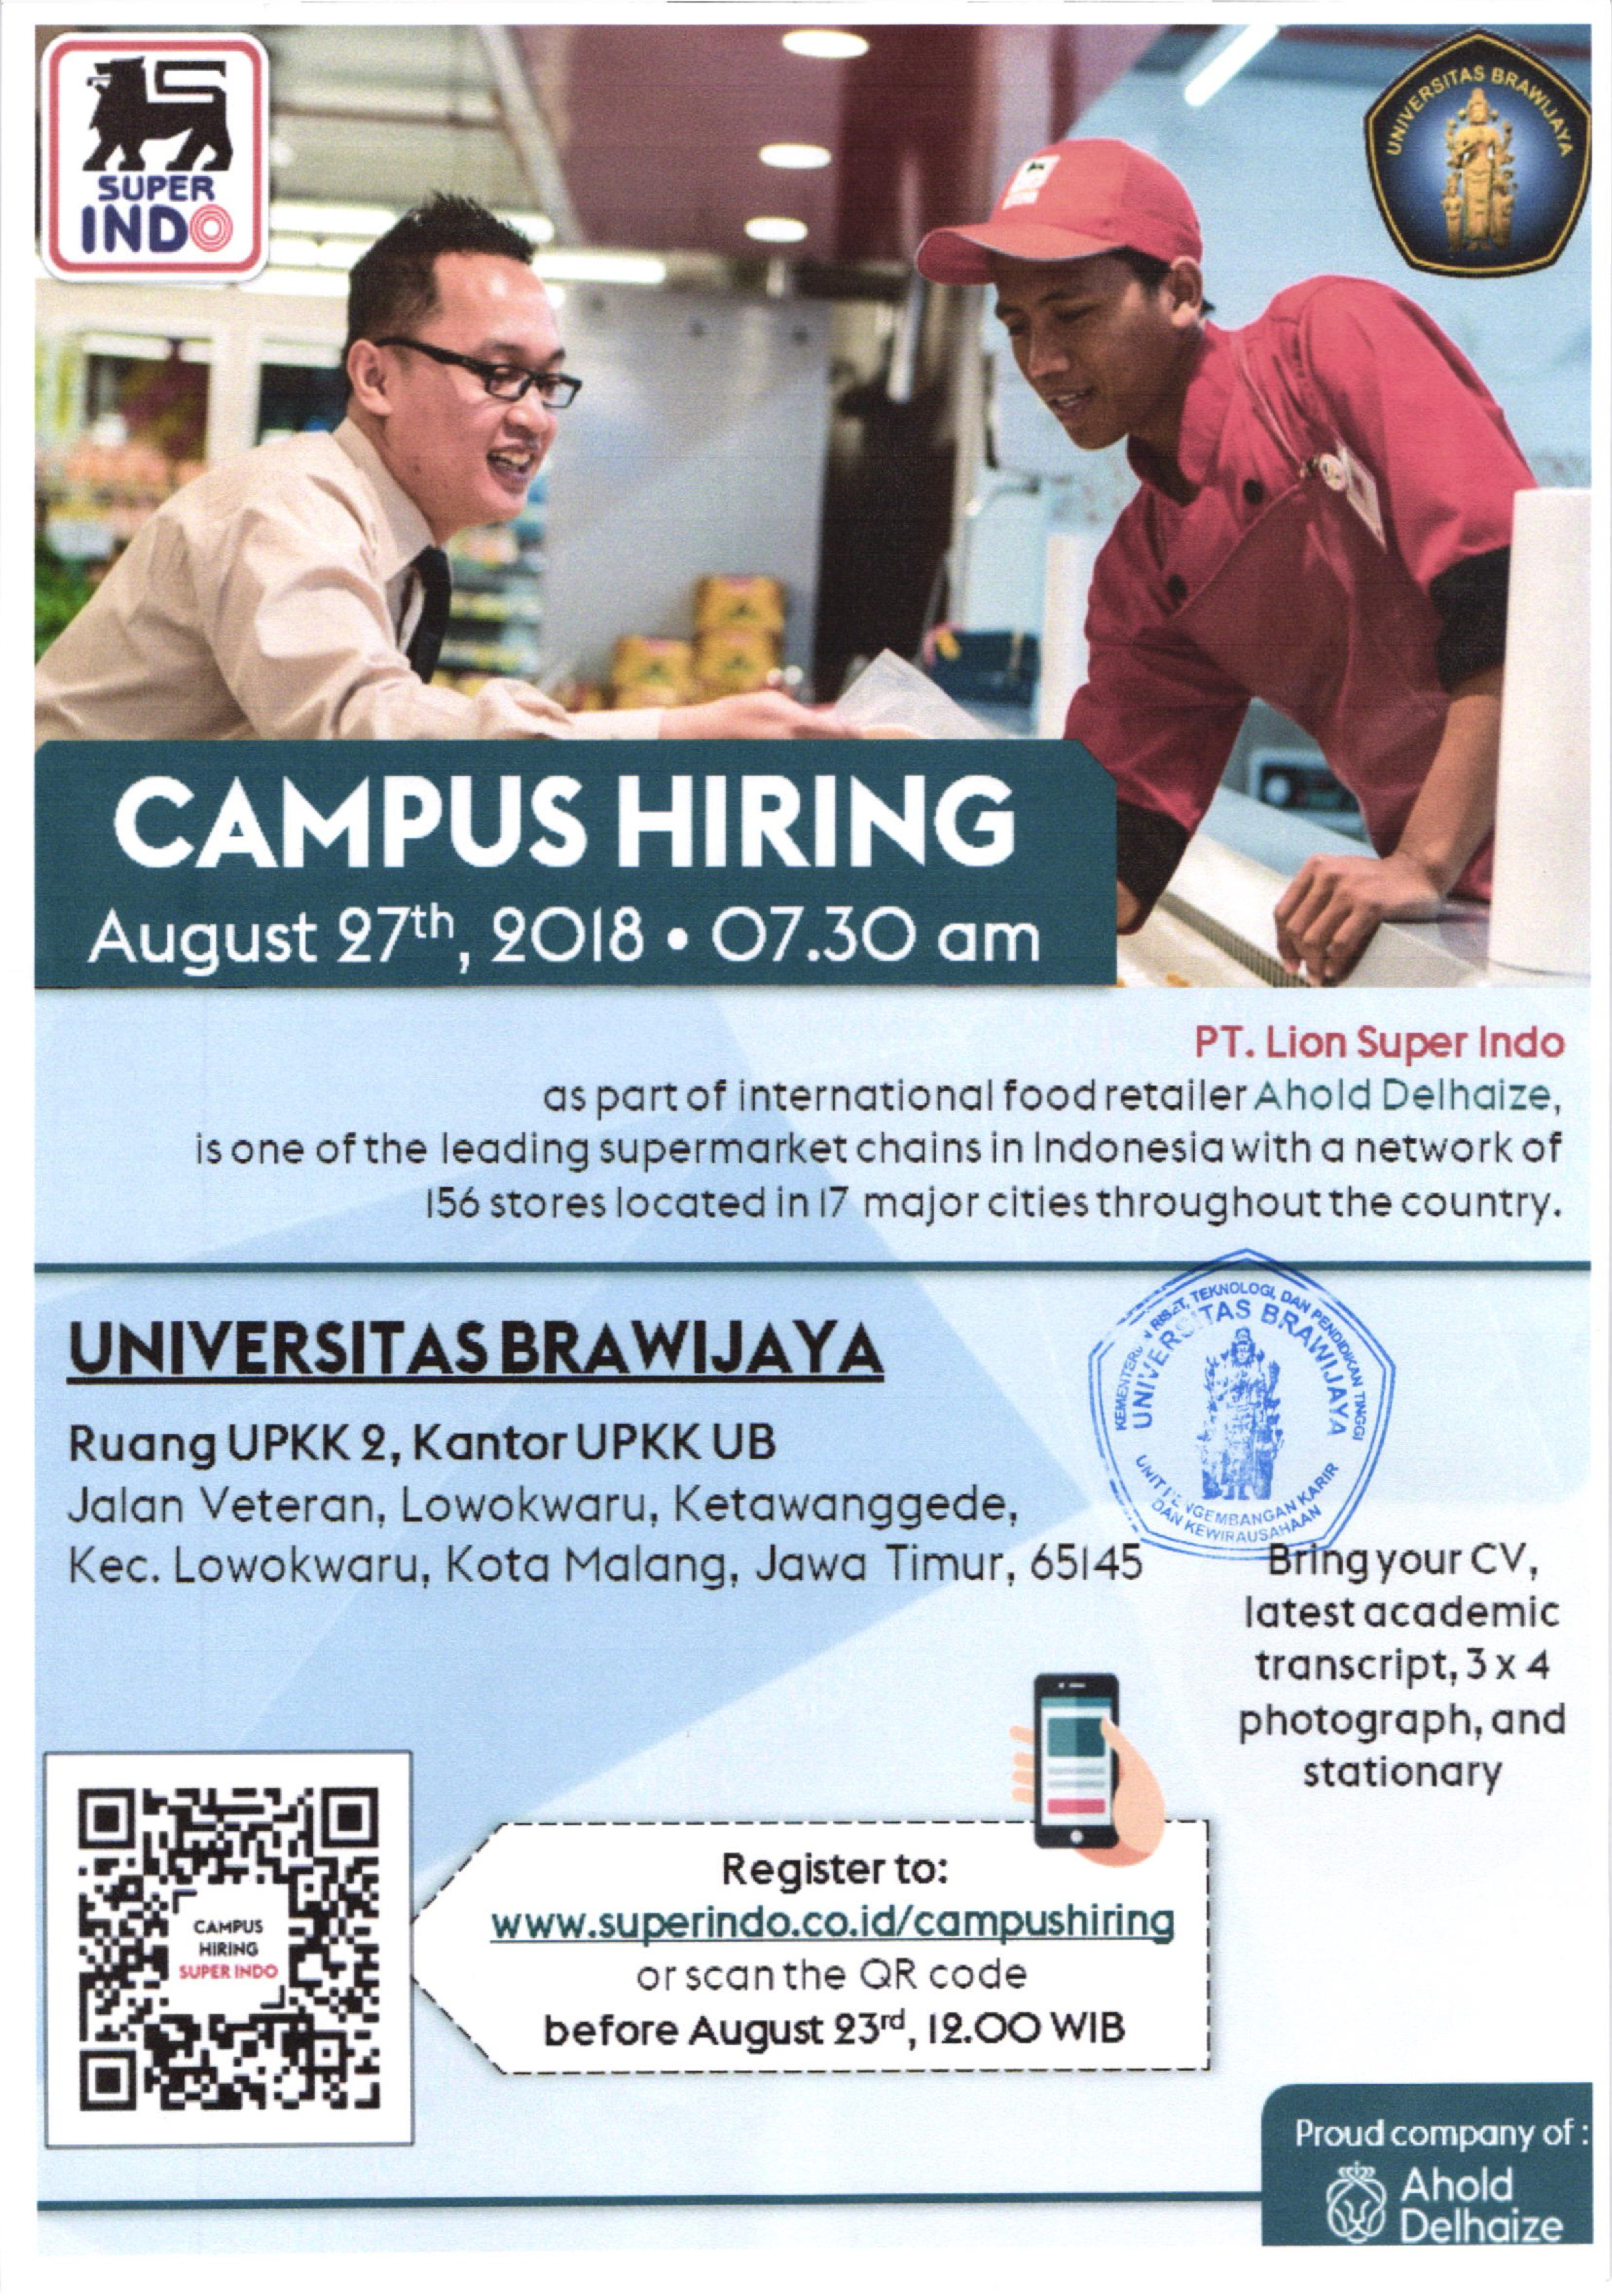 10_campus_hiring_pt_lion_superindo_(1)